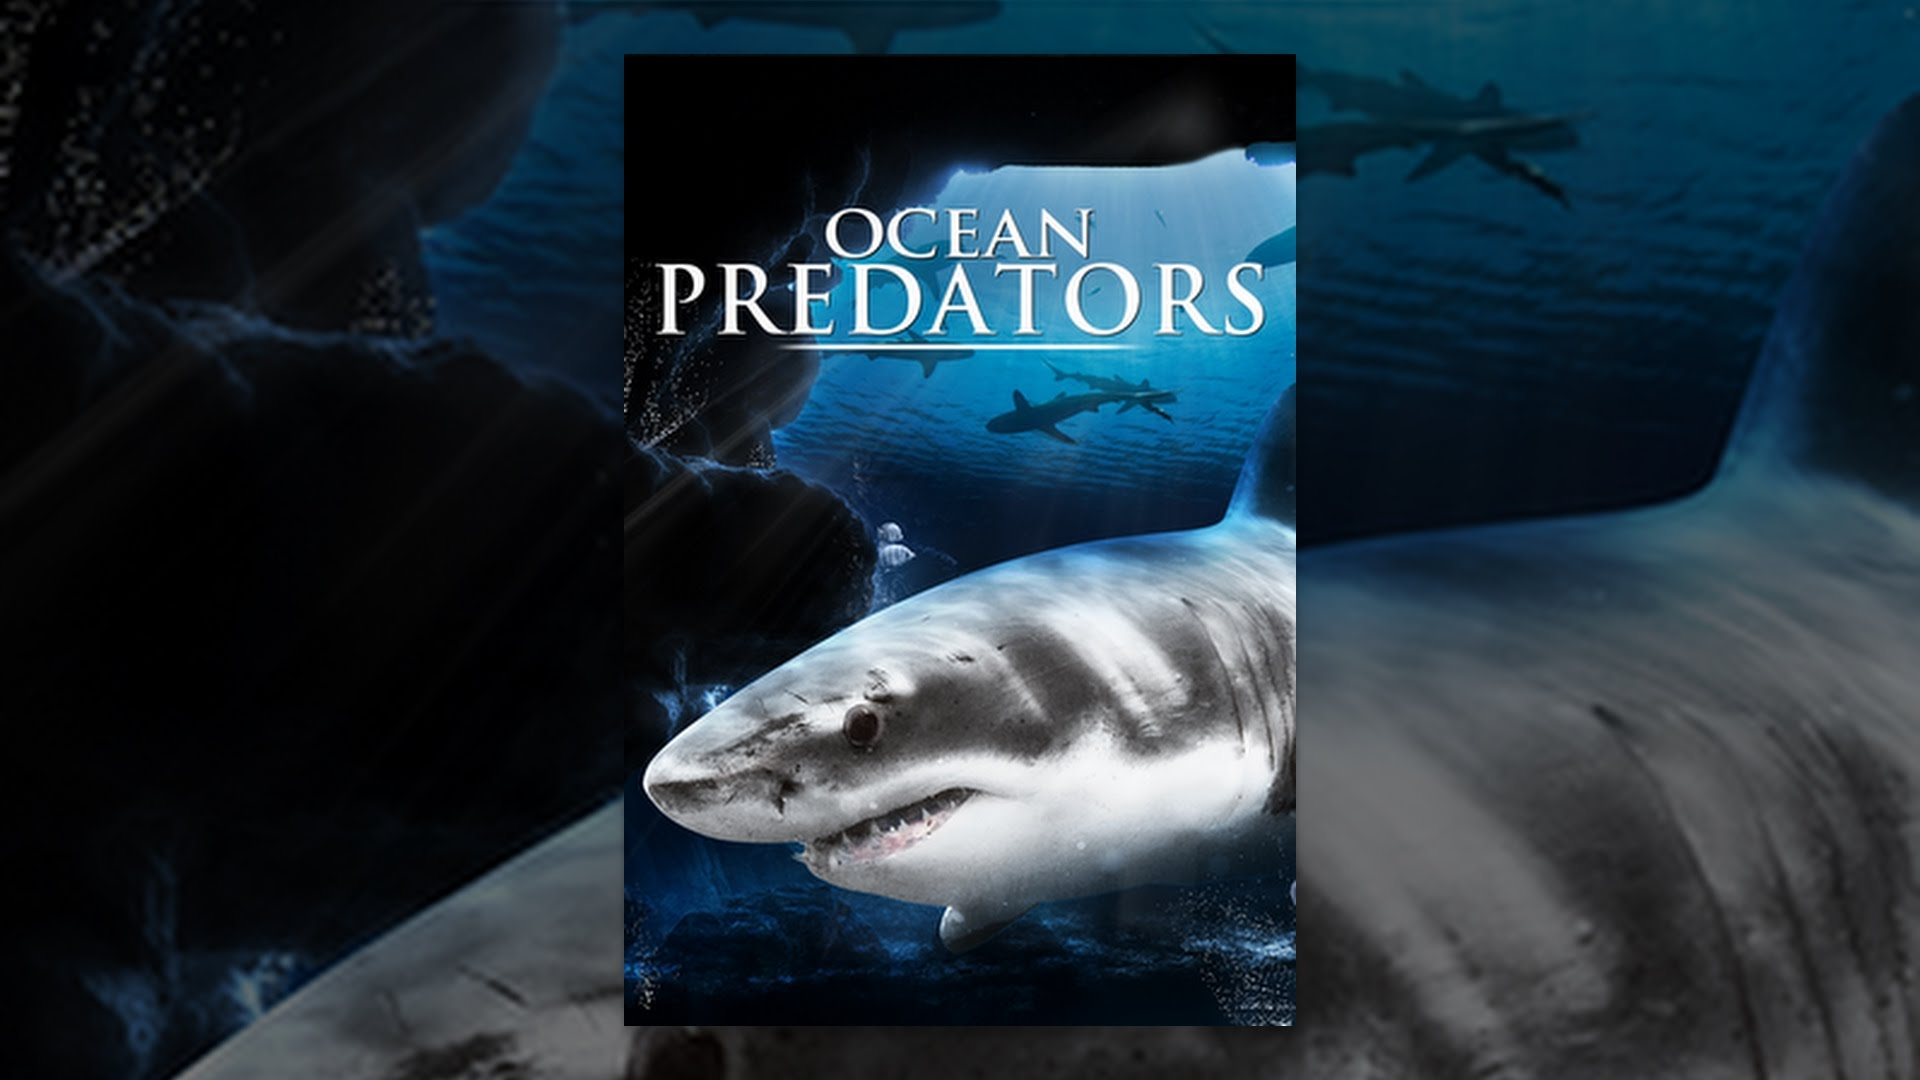 the predators of the ocean The wild is the hunting ground of the most dangerous predators out there, though some predators inhabit urban areas as well some animals are designed for speed and agility which comes in handy in the game of survival.